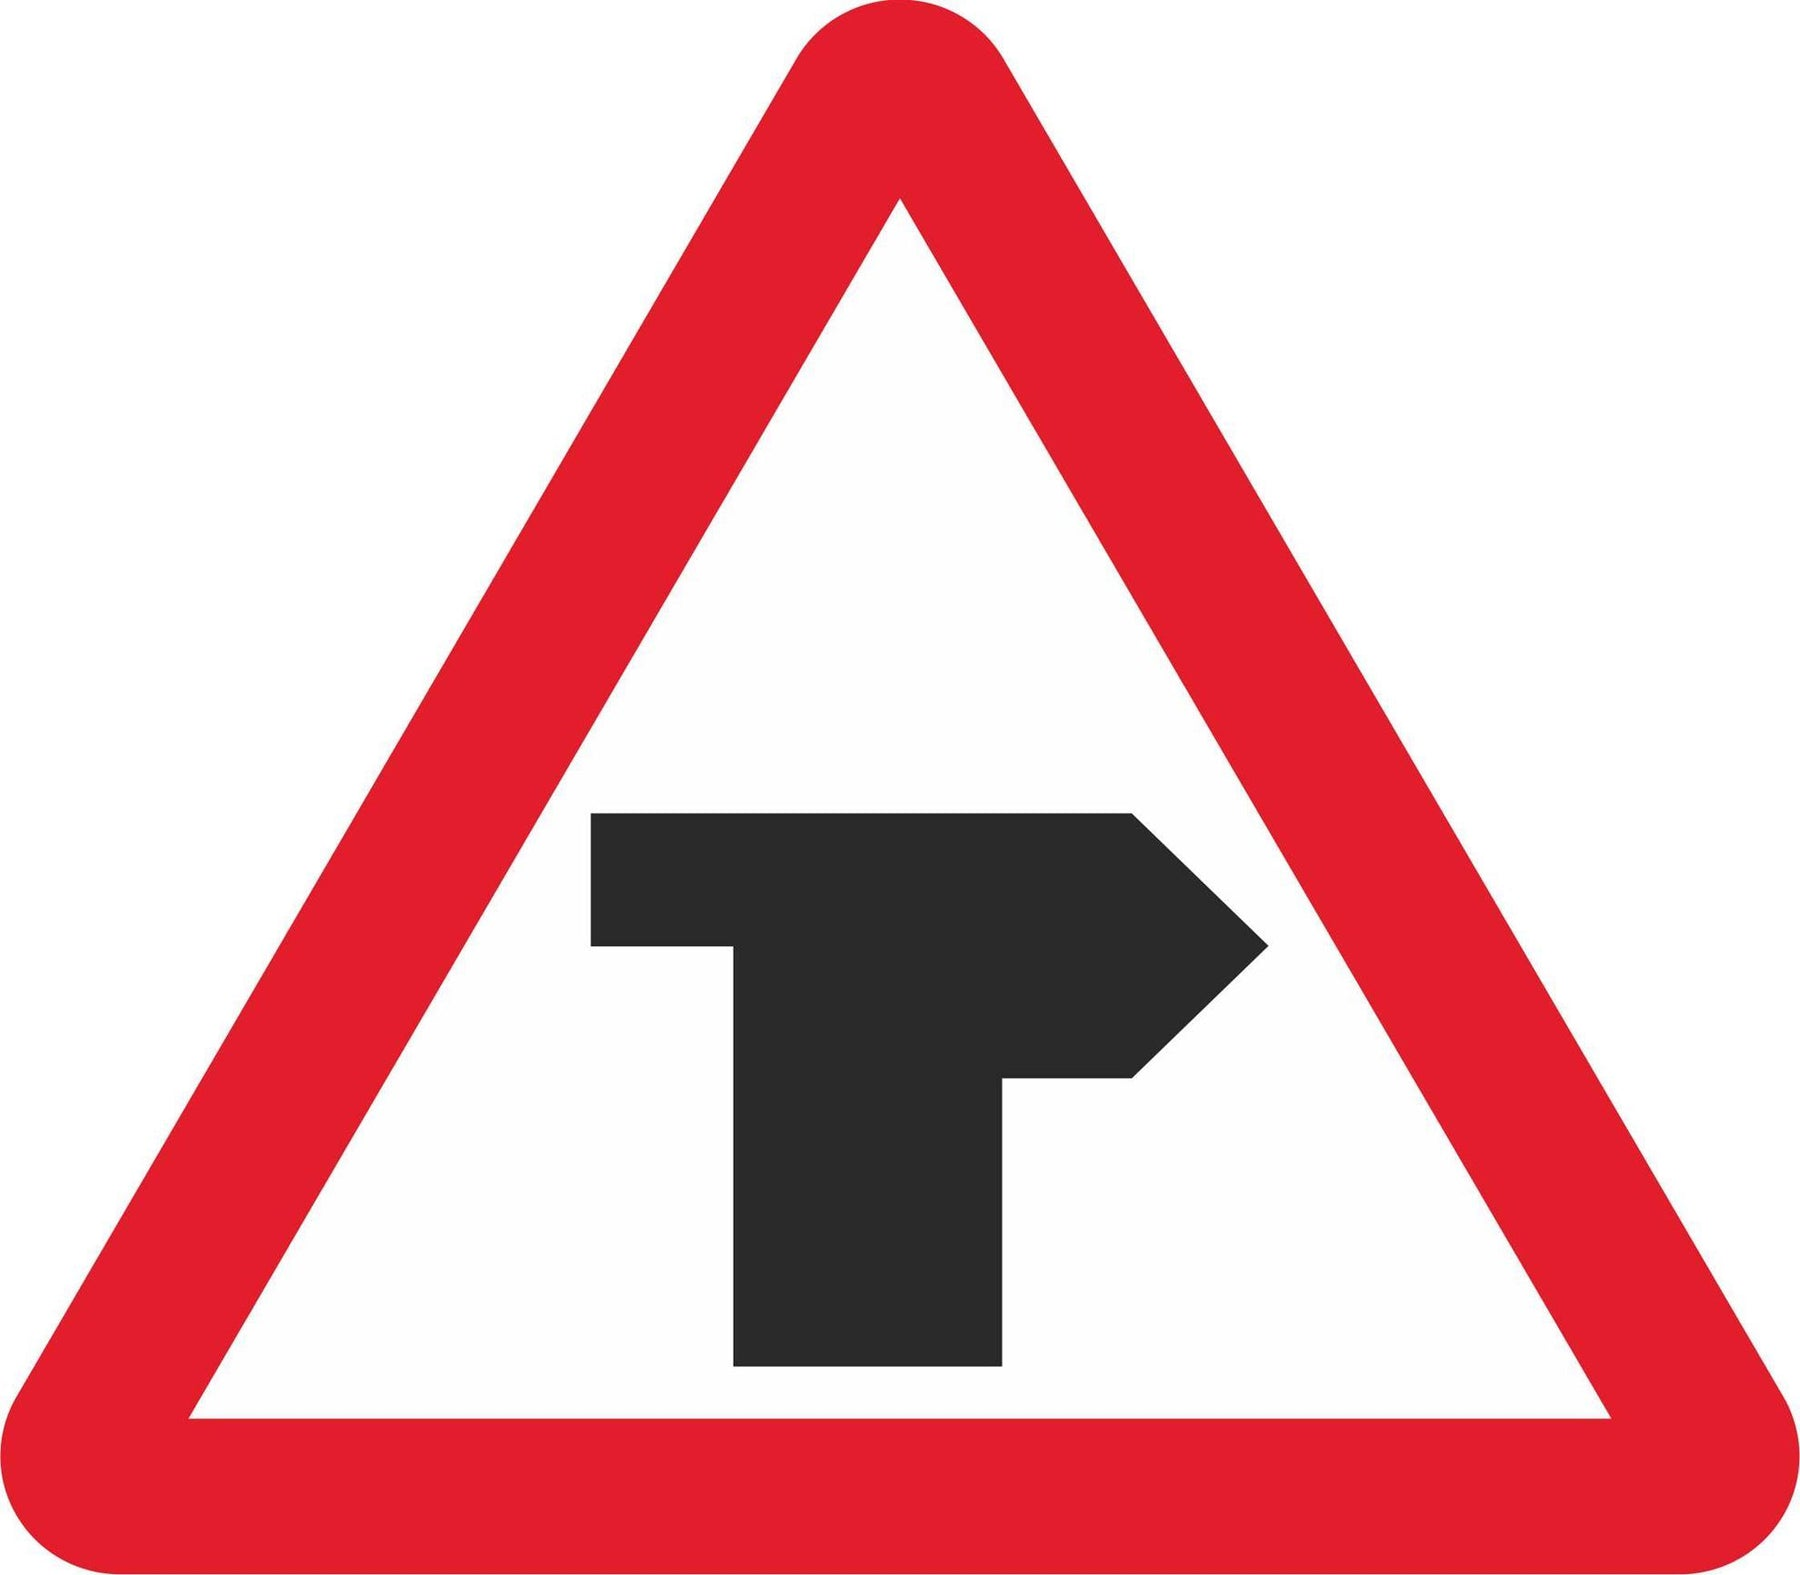 T-junction with priority over vehicles from the left - Road Traffic Sign